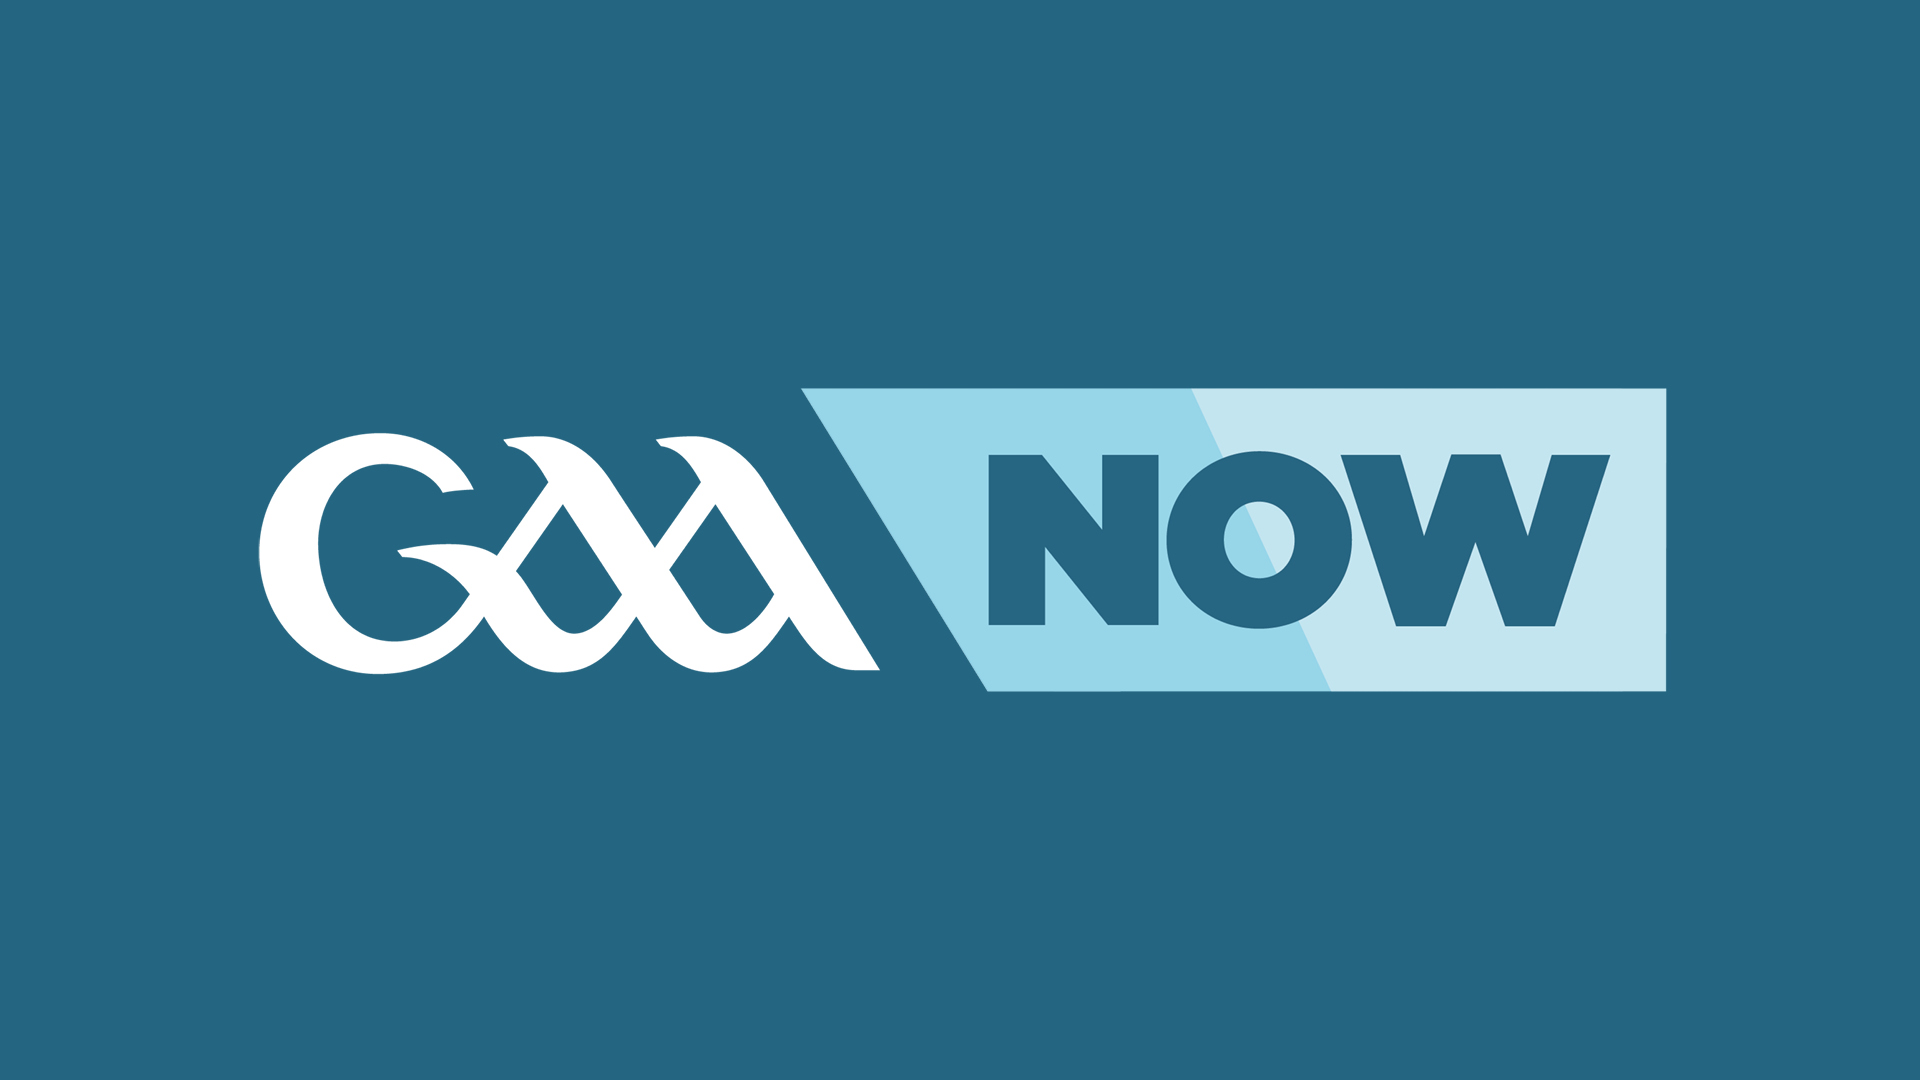 GAA Now Logo Design